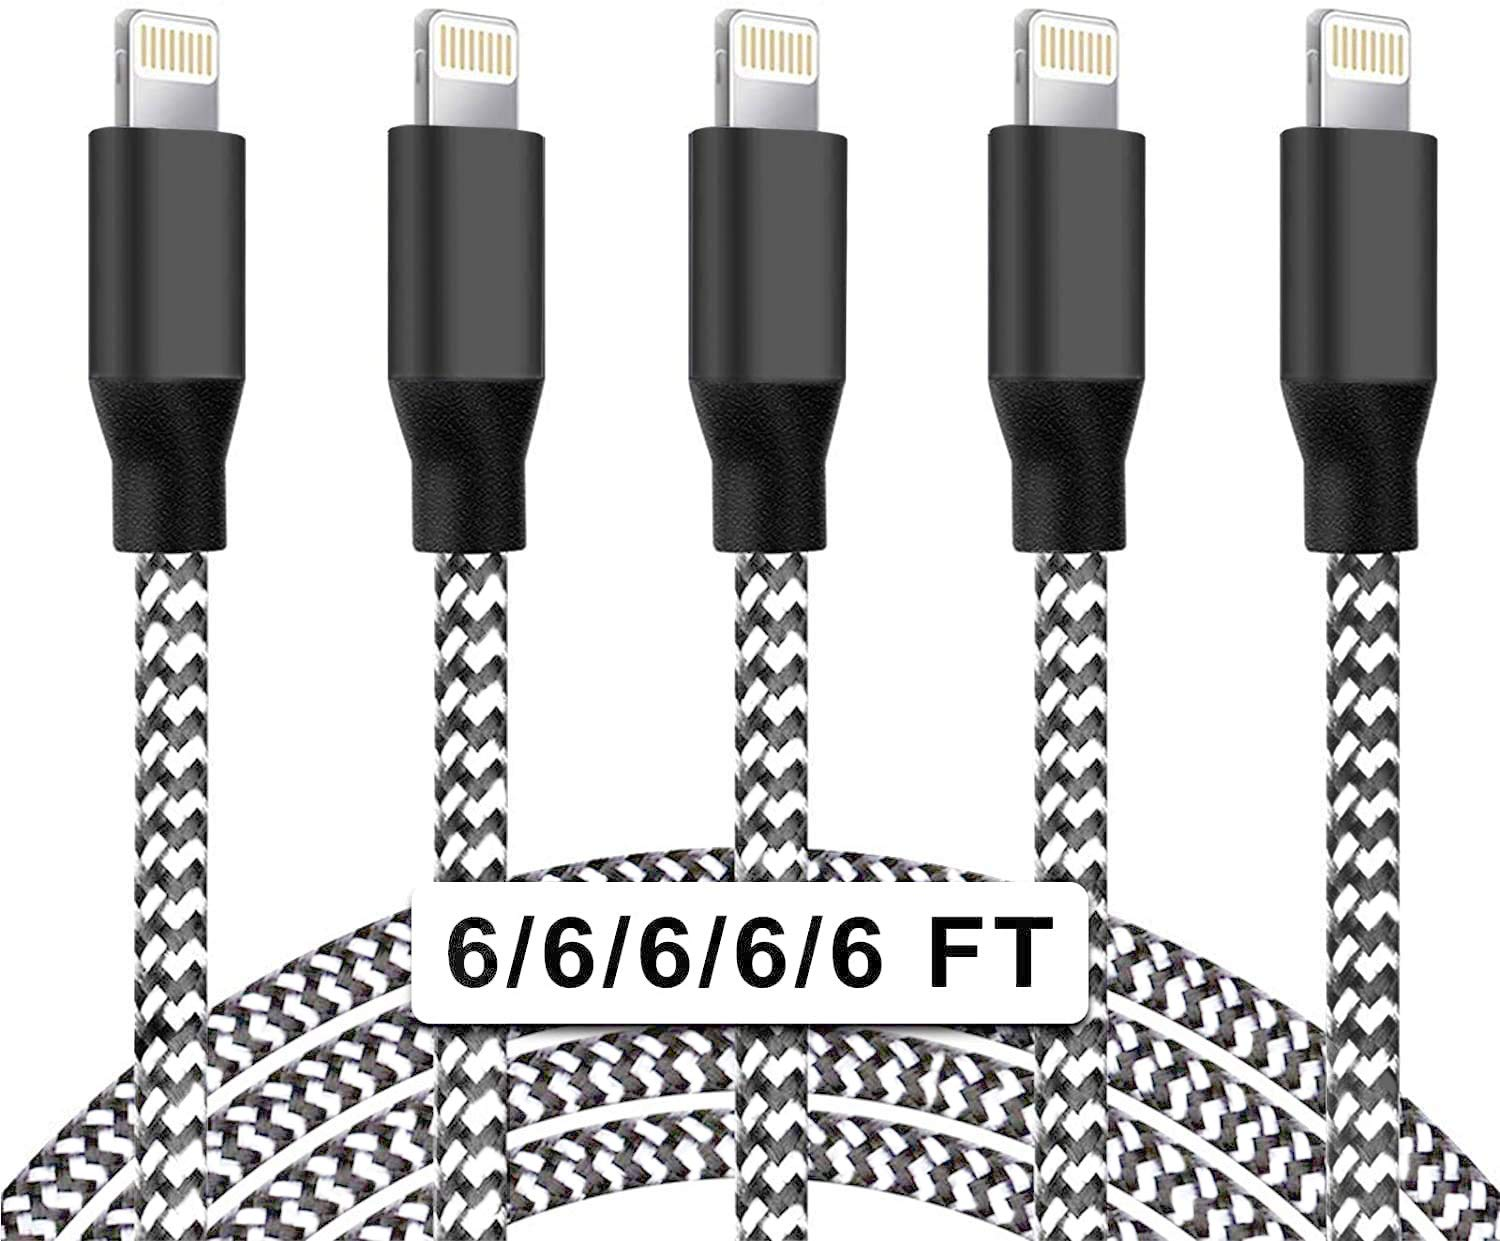 iPhone Charger Cable, [5Pack 6FT] MFi Certified Onpro Lightning Cable iPhone Charging Cord Nylon Braided Cable Charger Wire Compatible iPhone 12 Pro Max/12/11/X/Max/8/7/6/5/S/SE/Plus iPad Airpods